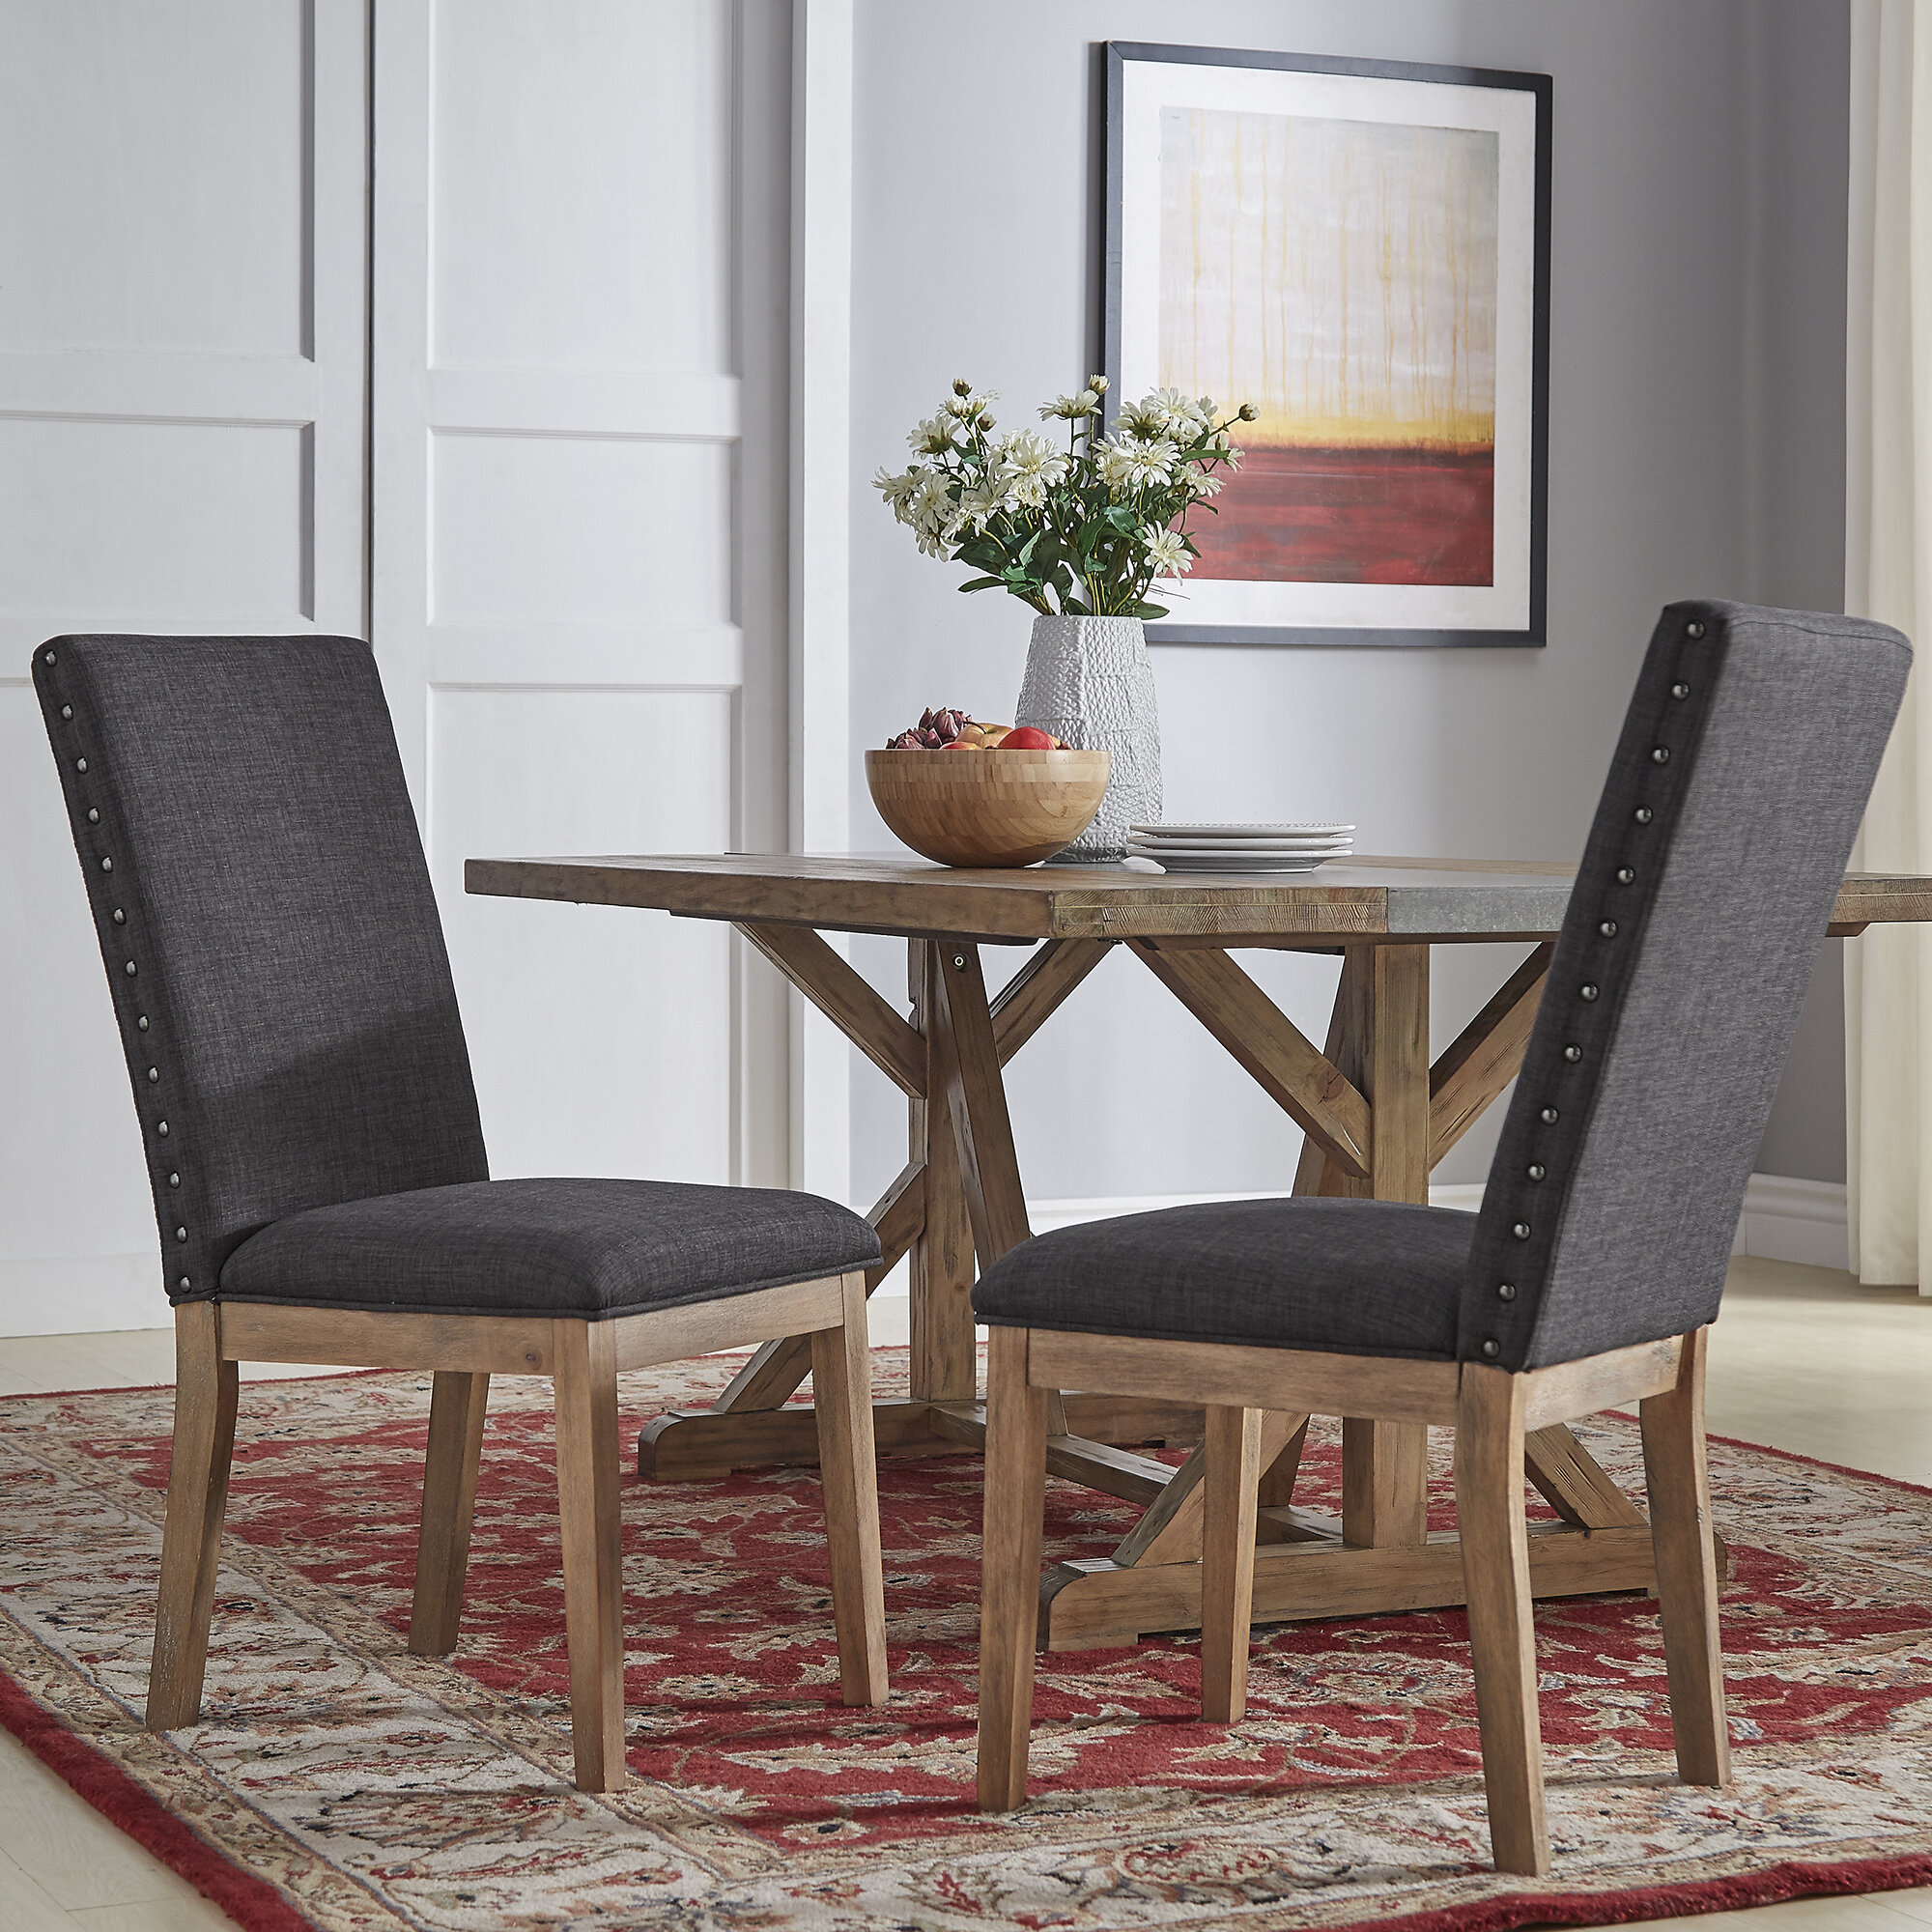 Super Irving Place Linen Nailhead Upholstered Dining Chair Bralicious Painted Fabric Chair Ideas Braliciousco